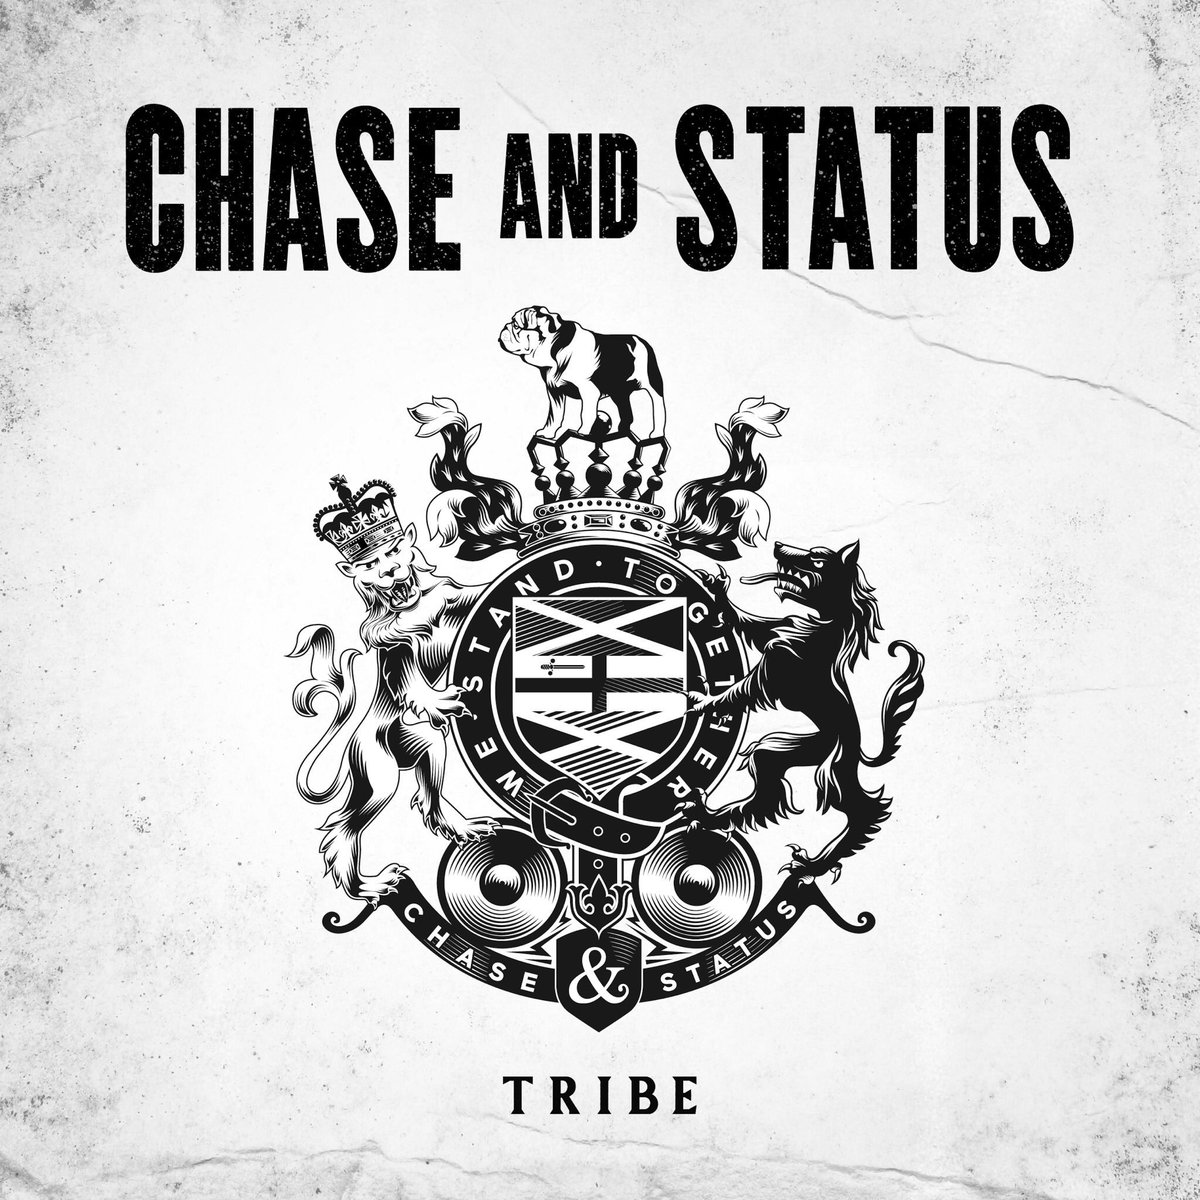 Go grab the massive 4th album #tribe from @chaseandstatus - BIG love! #dnbfamily ❤️🙌🏻🔥https://t.co/KqbwTe7Jnm